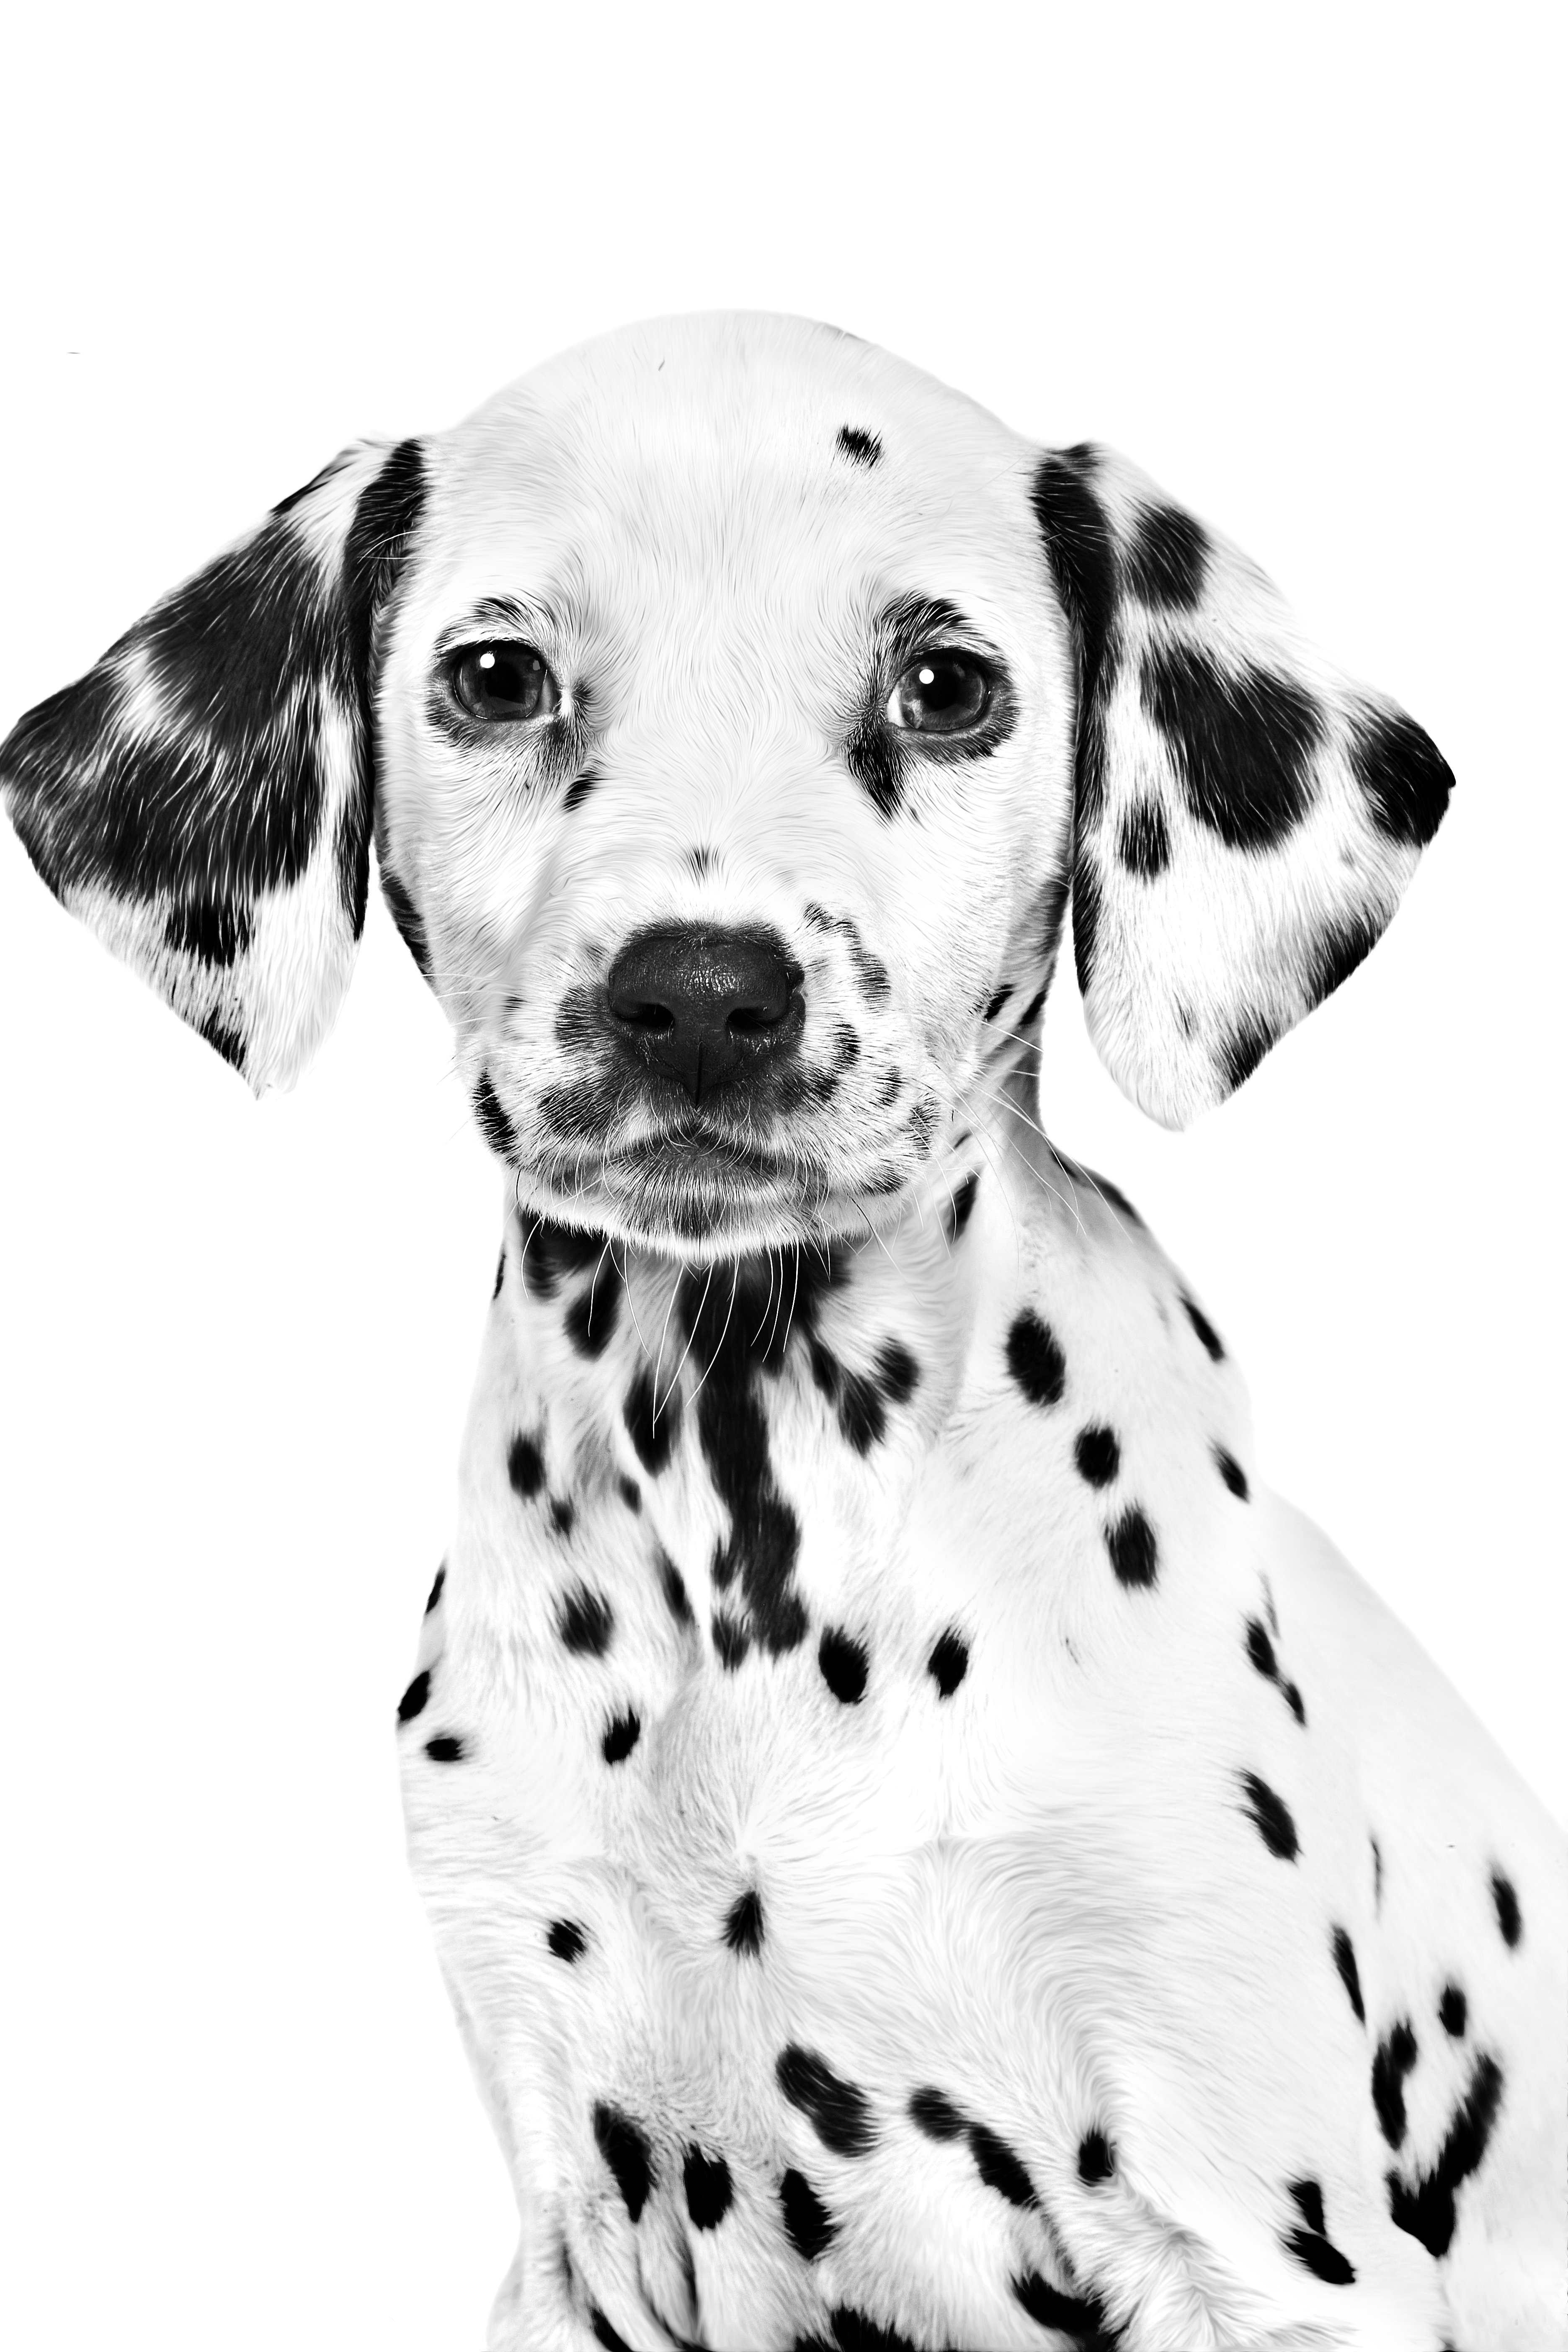 Dalmatian puppy in black and white on a white background